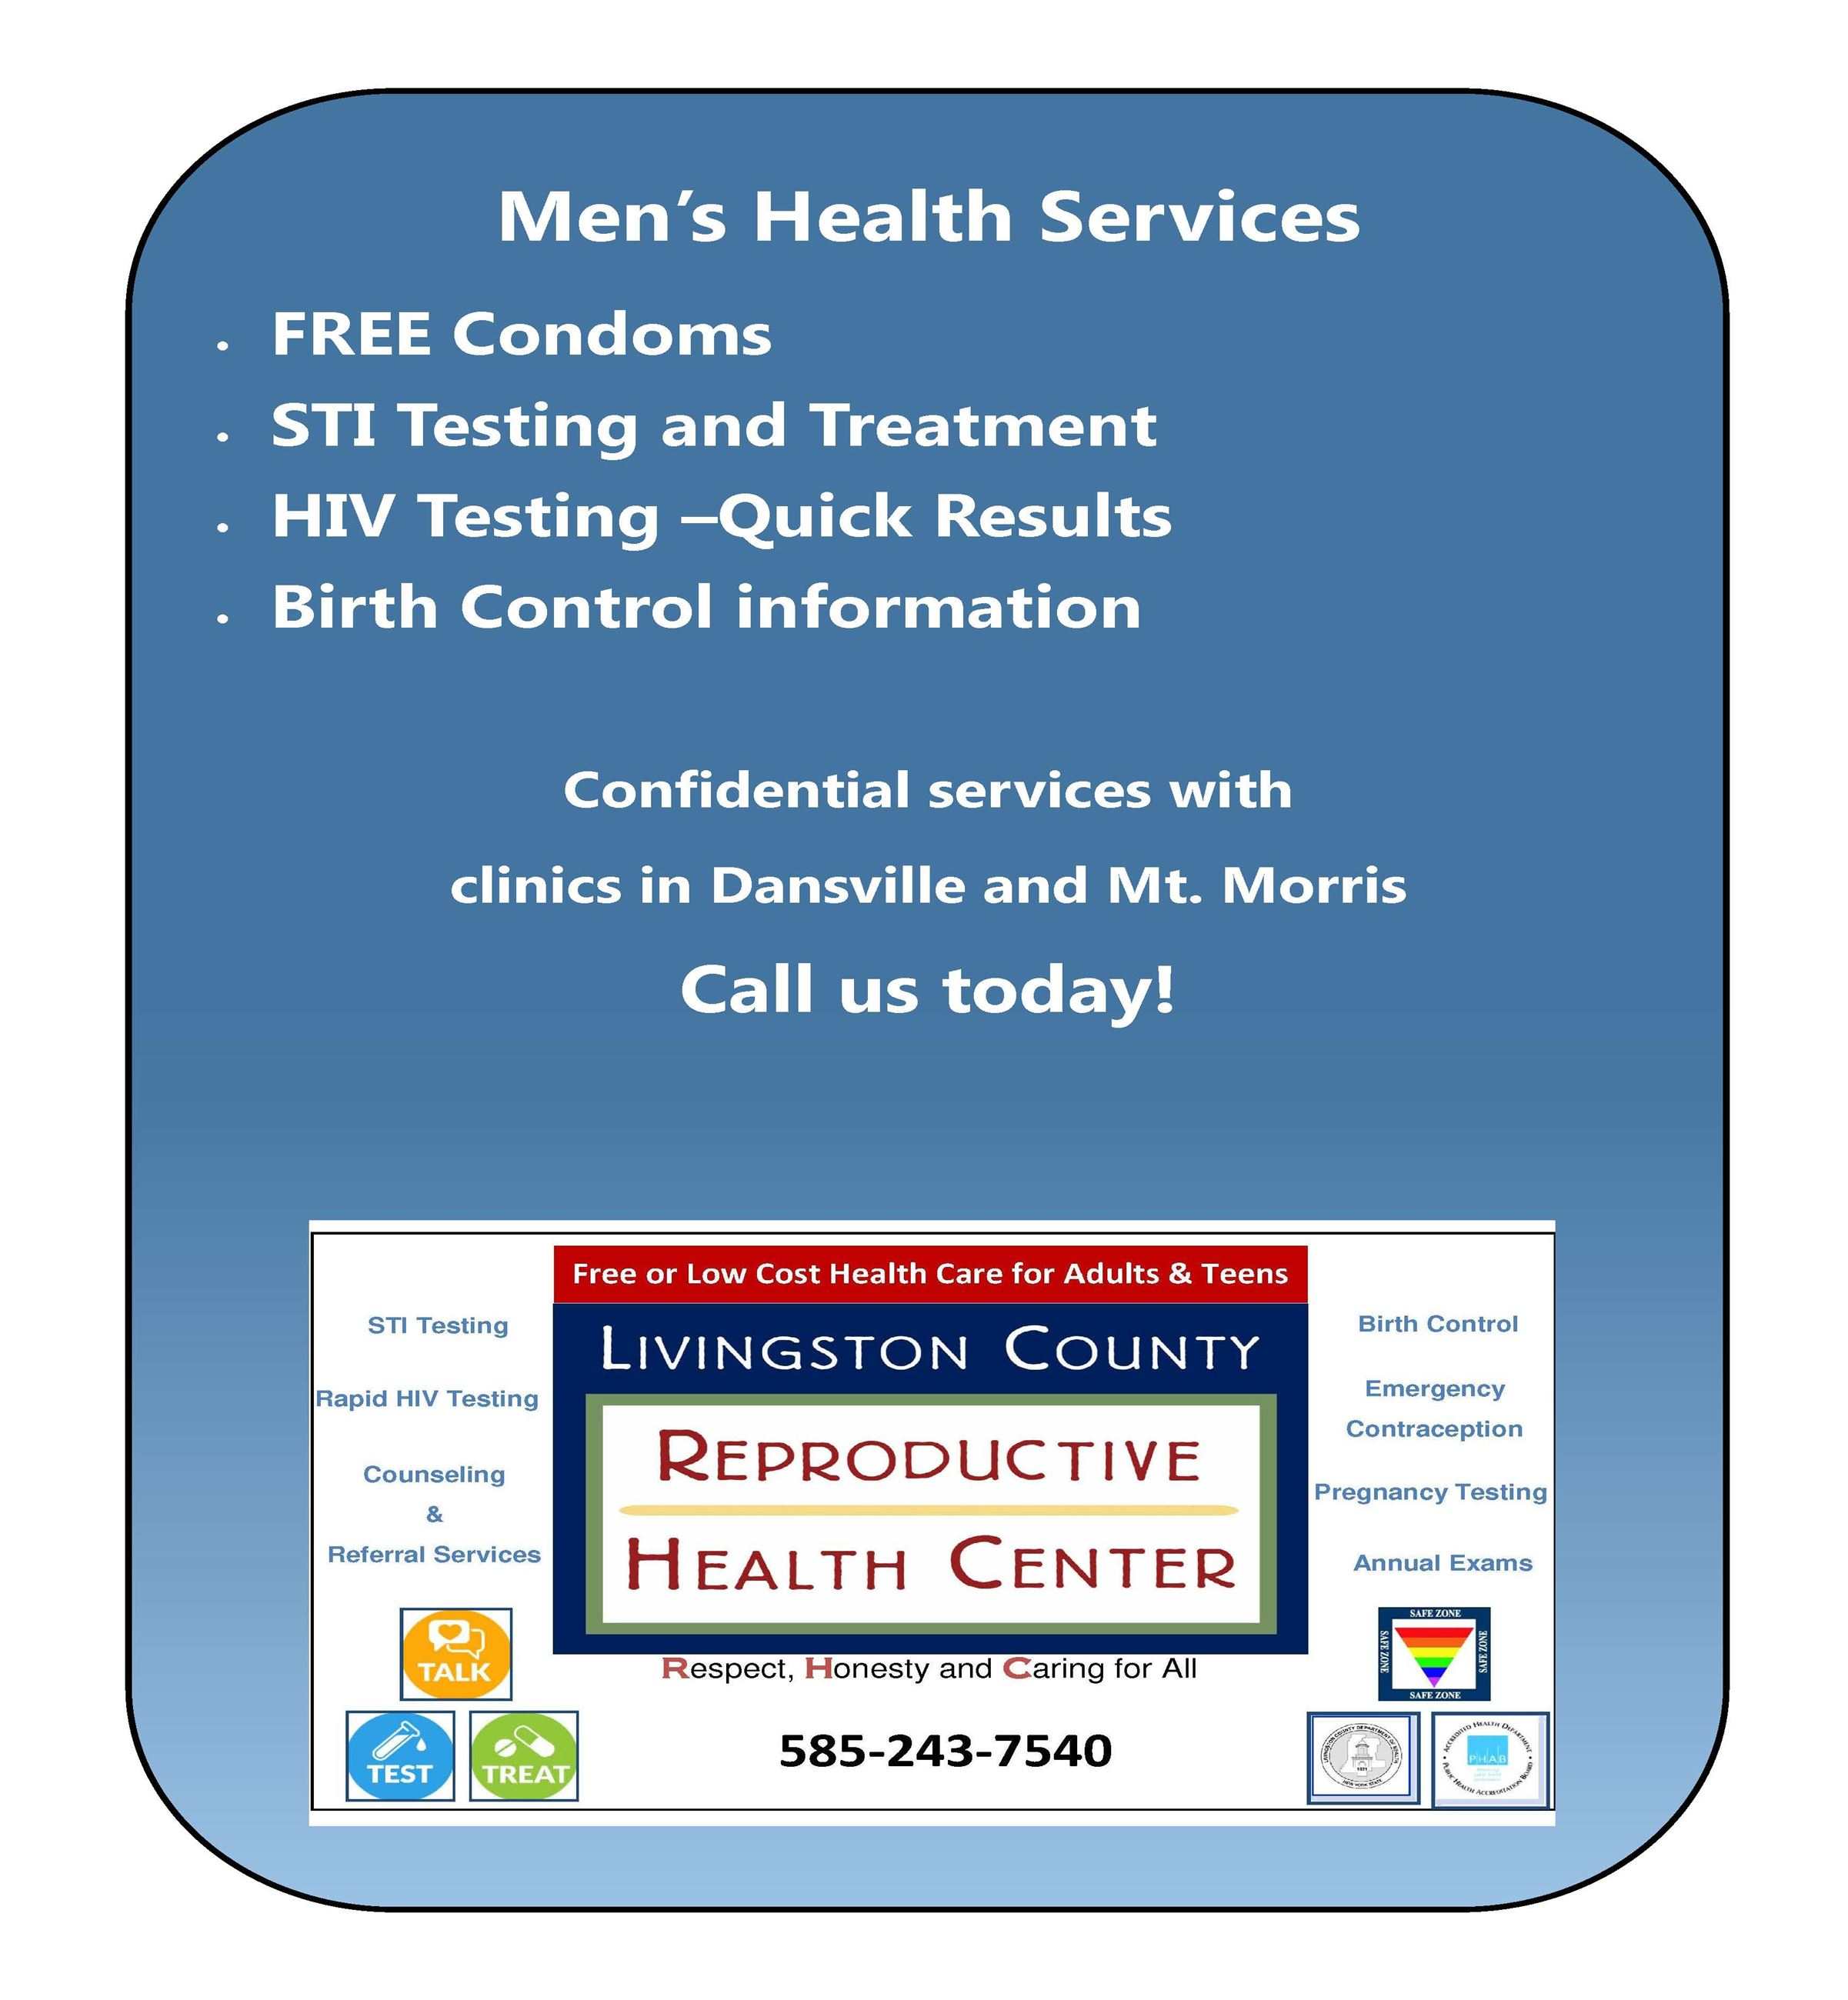 A flyer with a list of services for males